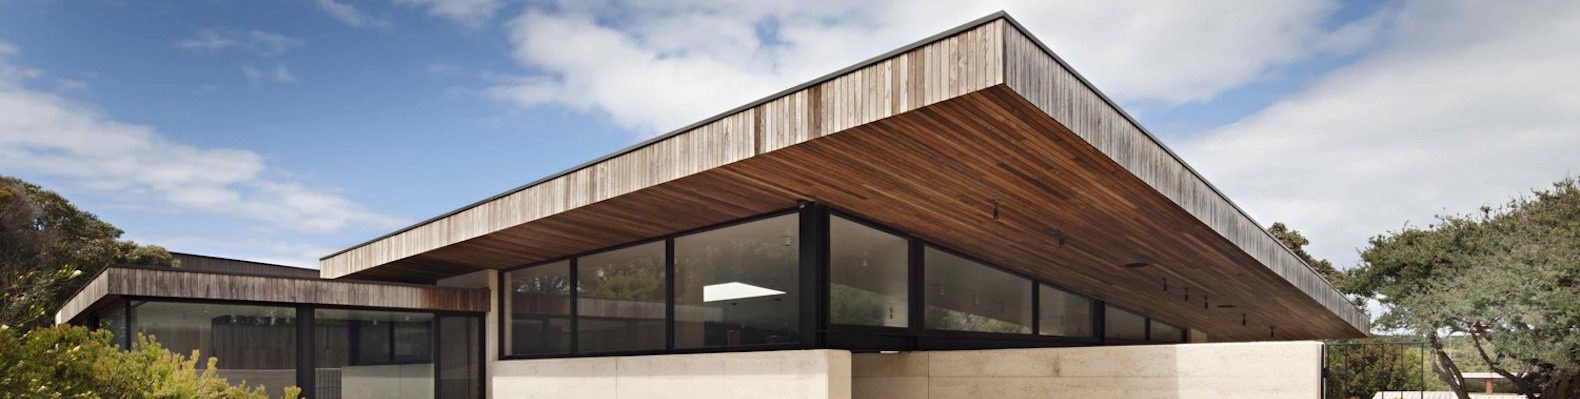 Elegant Australian home shows the beauty and toughness of rammed